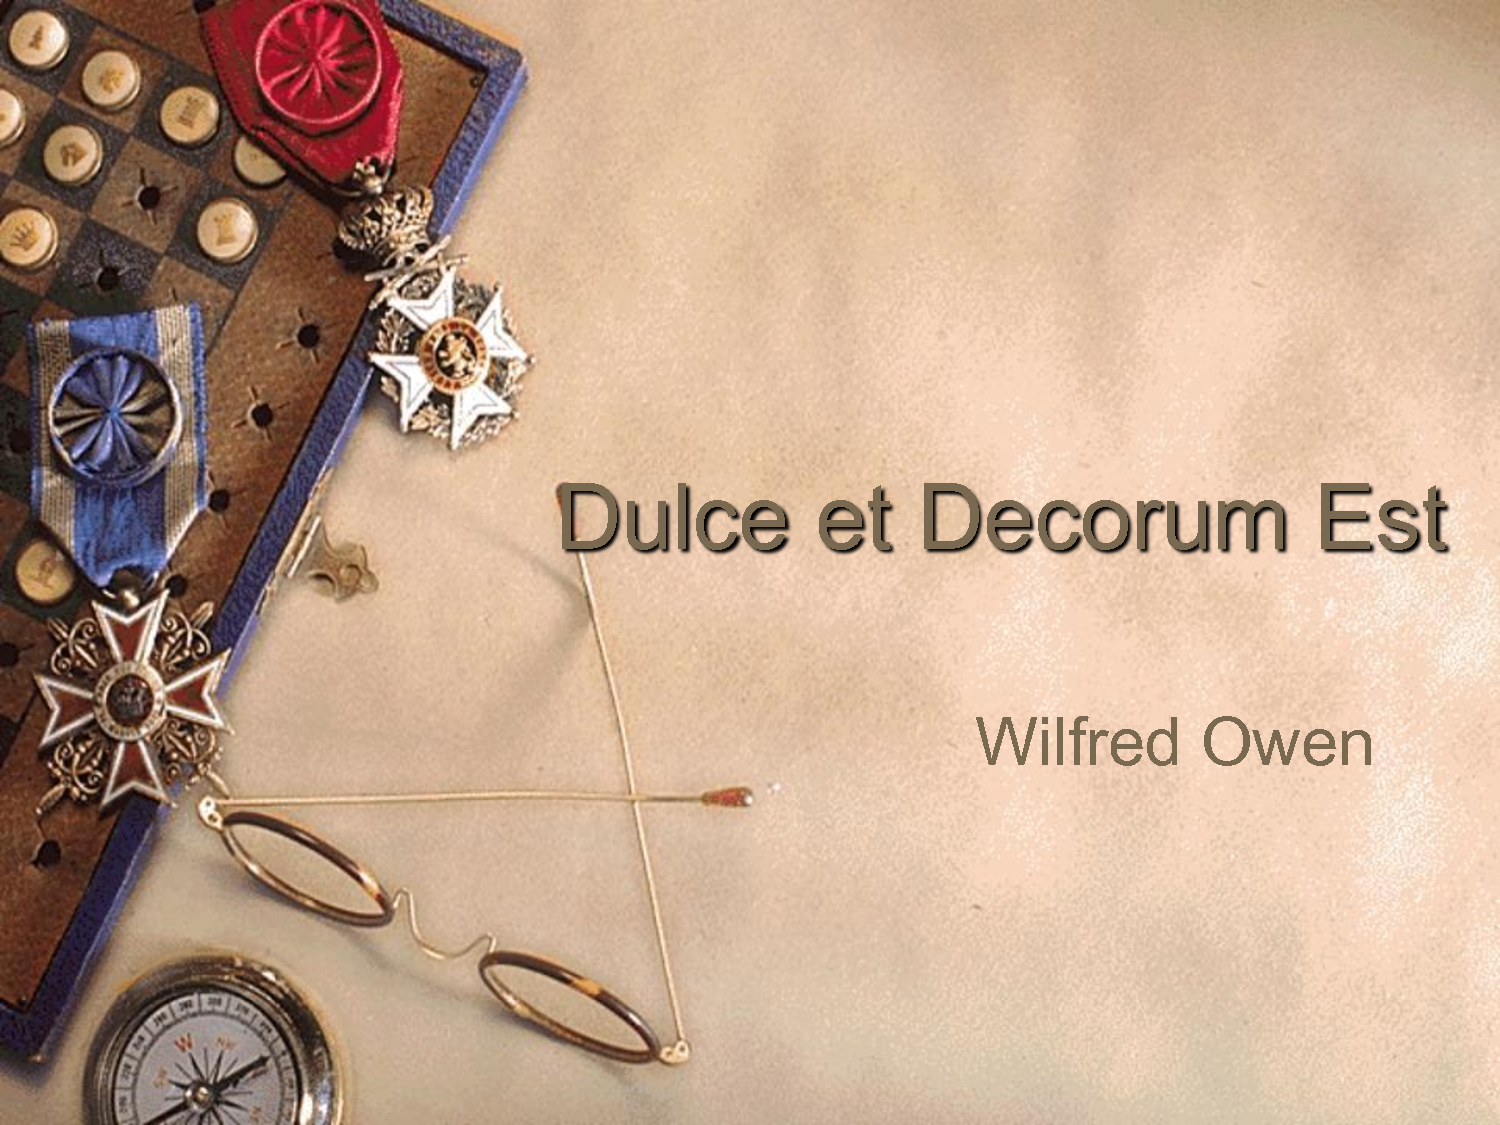 decorum quotes quotesgram follow us follow acircmiddot dulce decorum est powerpoint